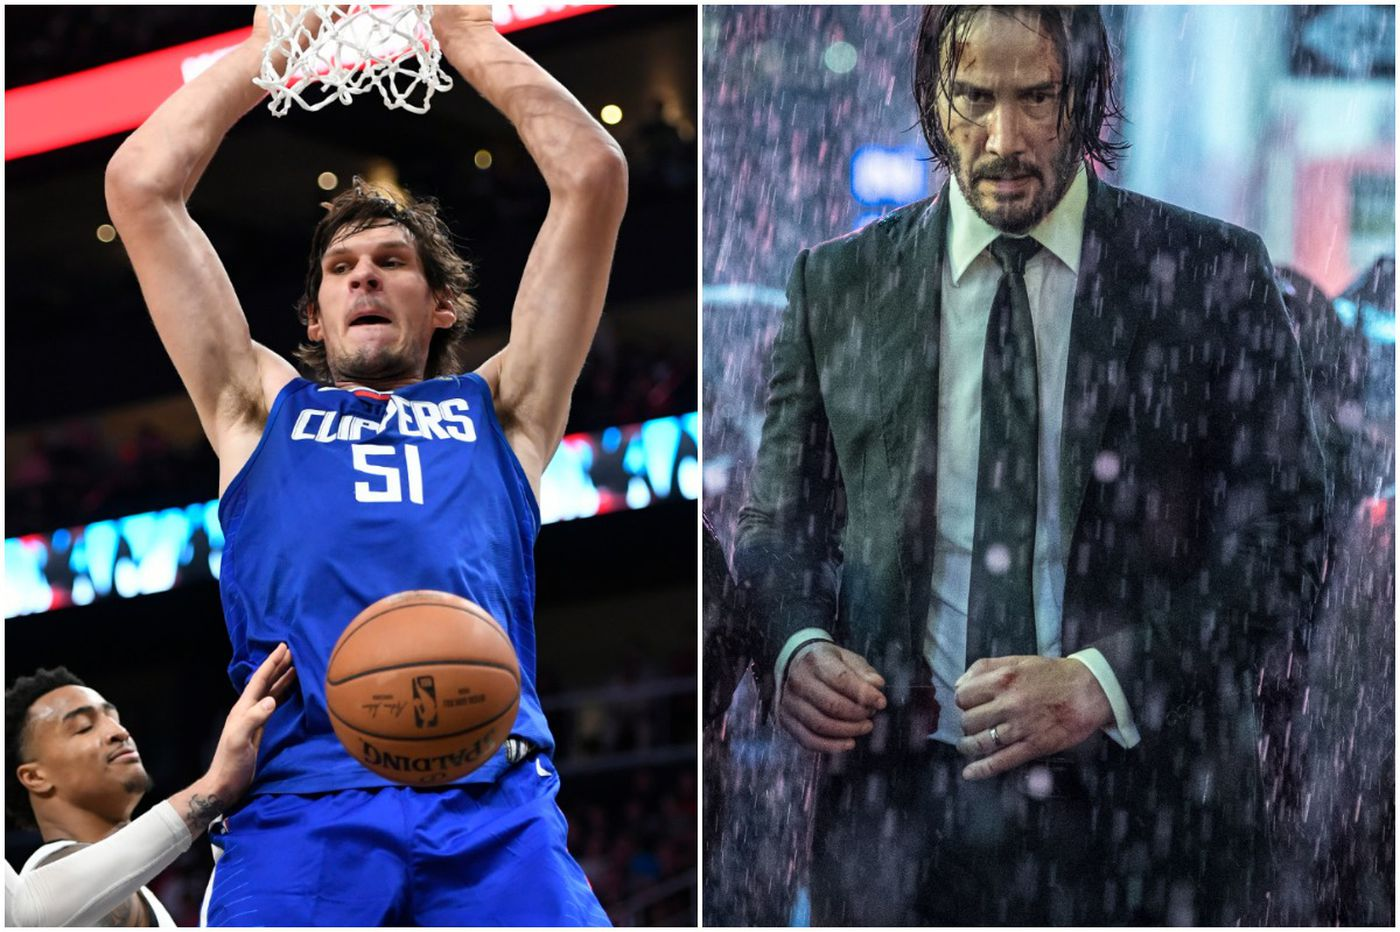 Sixers new center Boban Marjanovic gets book-stomped in 'John Wick 3'